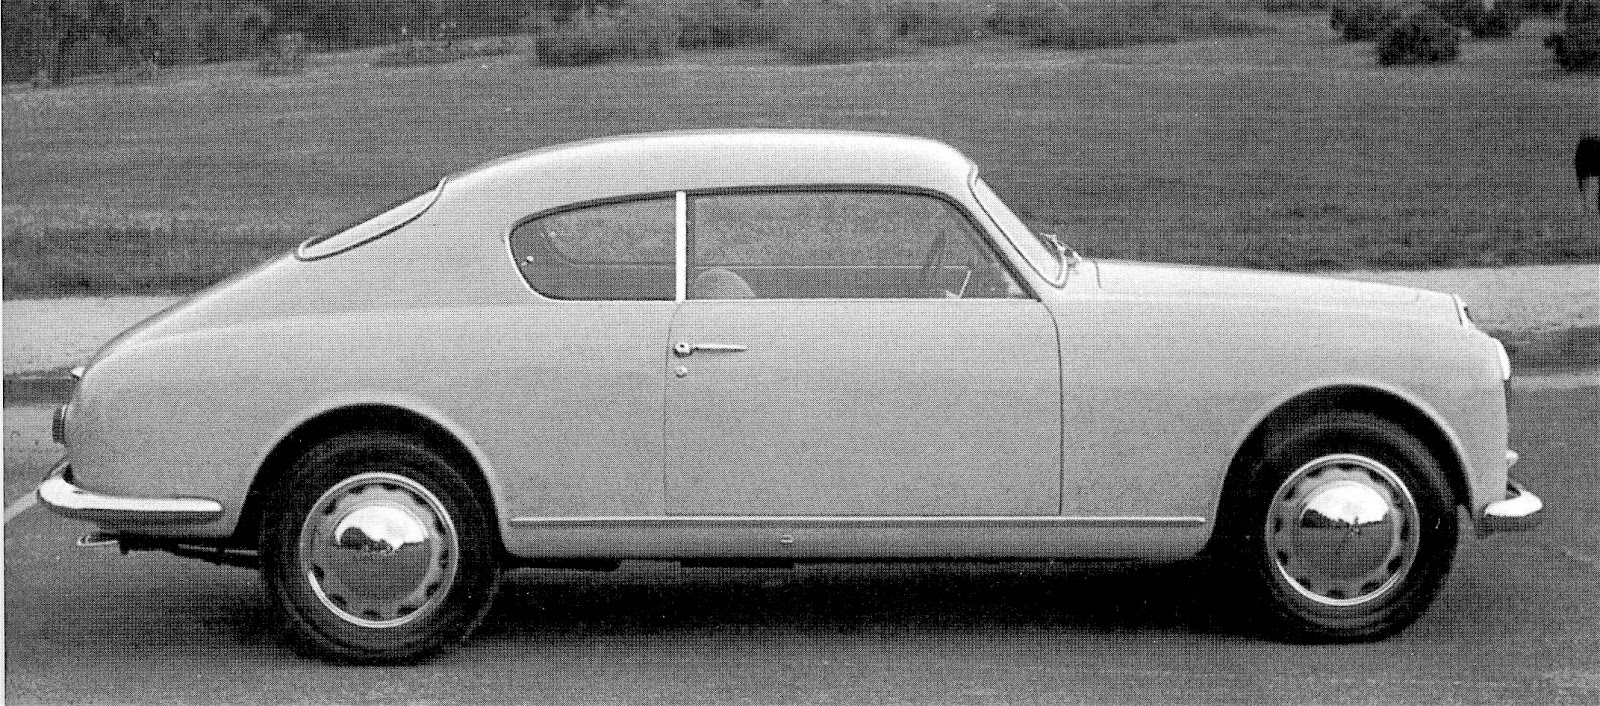 side view of a 1953 b20 berlinetta gt 2500 the side window profile is yet another demonstration that bmws famous shape was far far from original